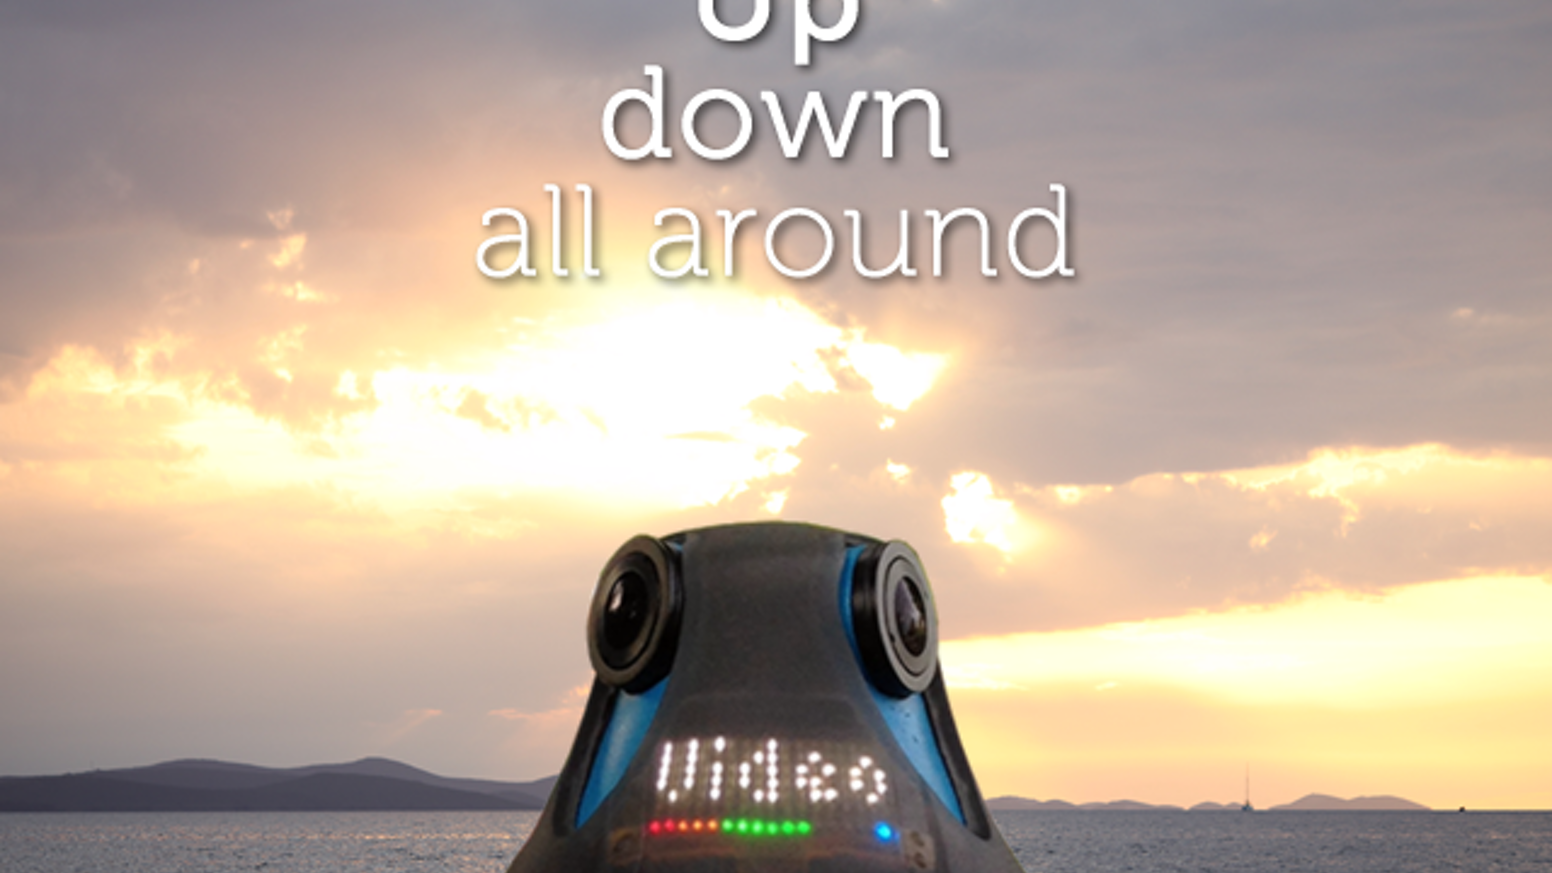 The World's First Full HD 360° Camera by GIROPTIC